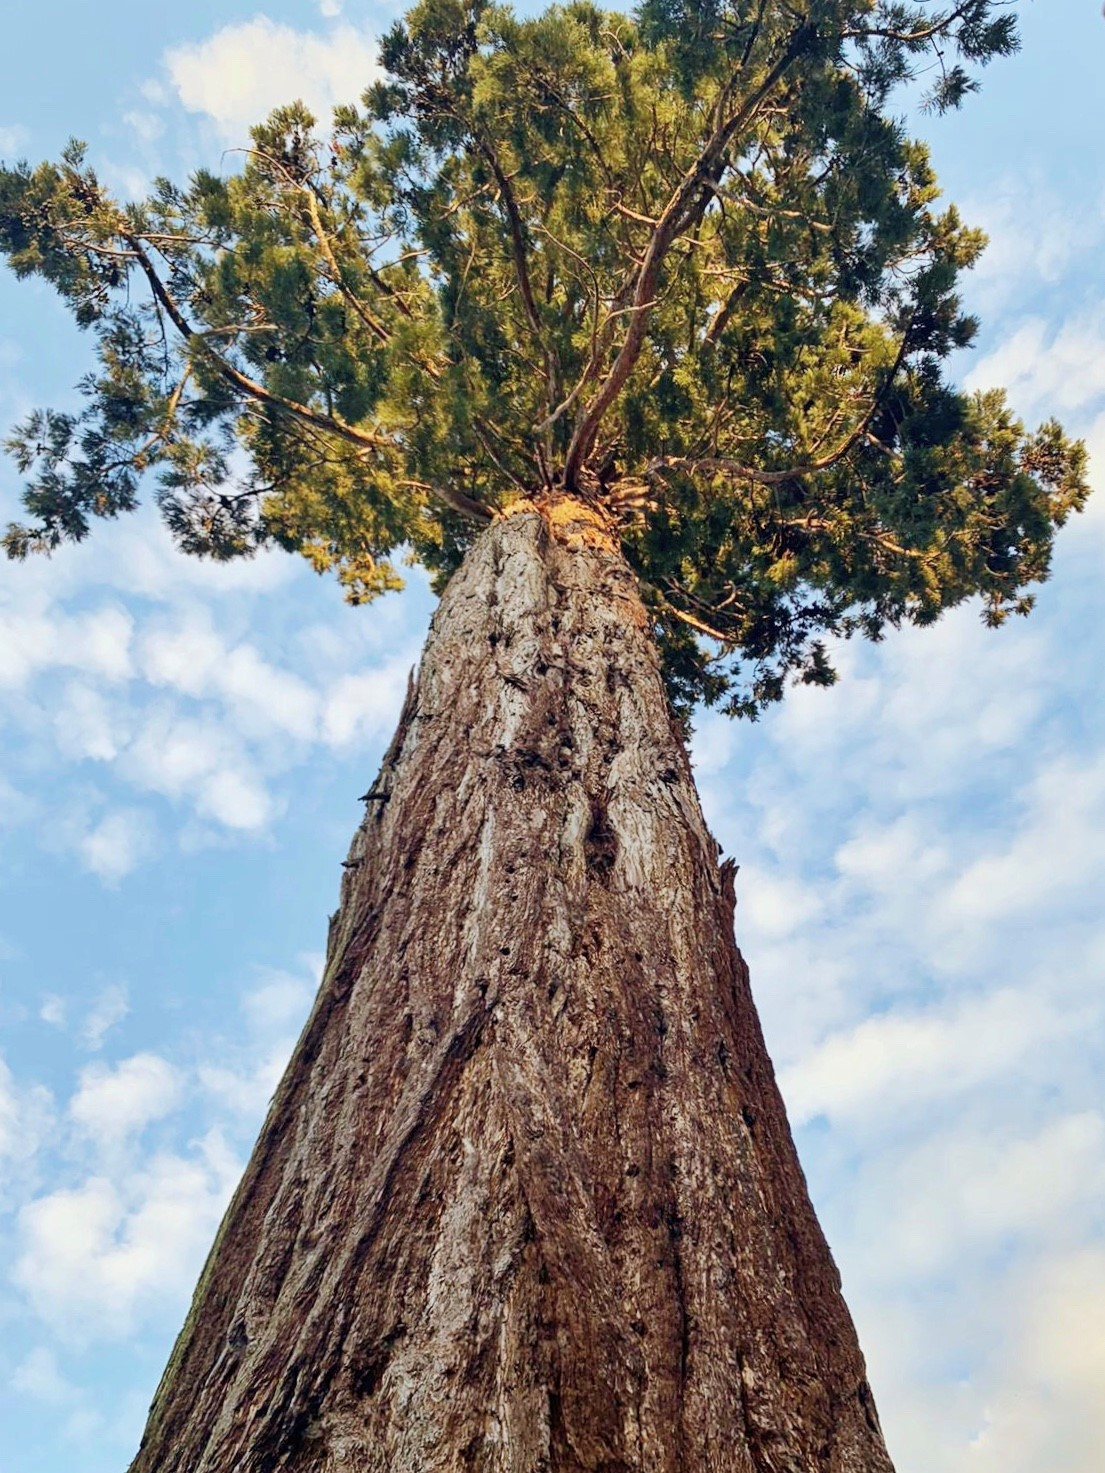 A picture looking up at the enormous Giant Sequoia on campus